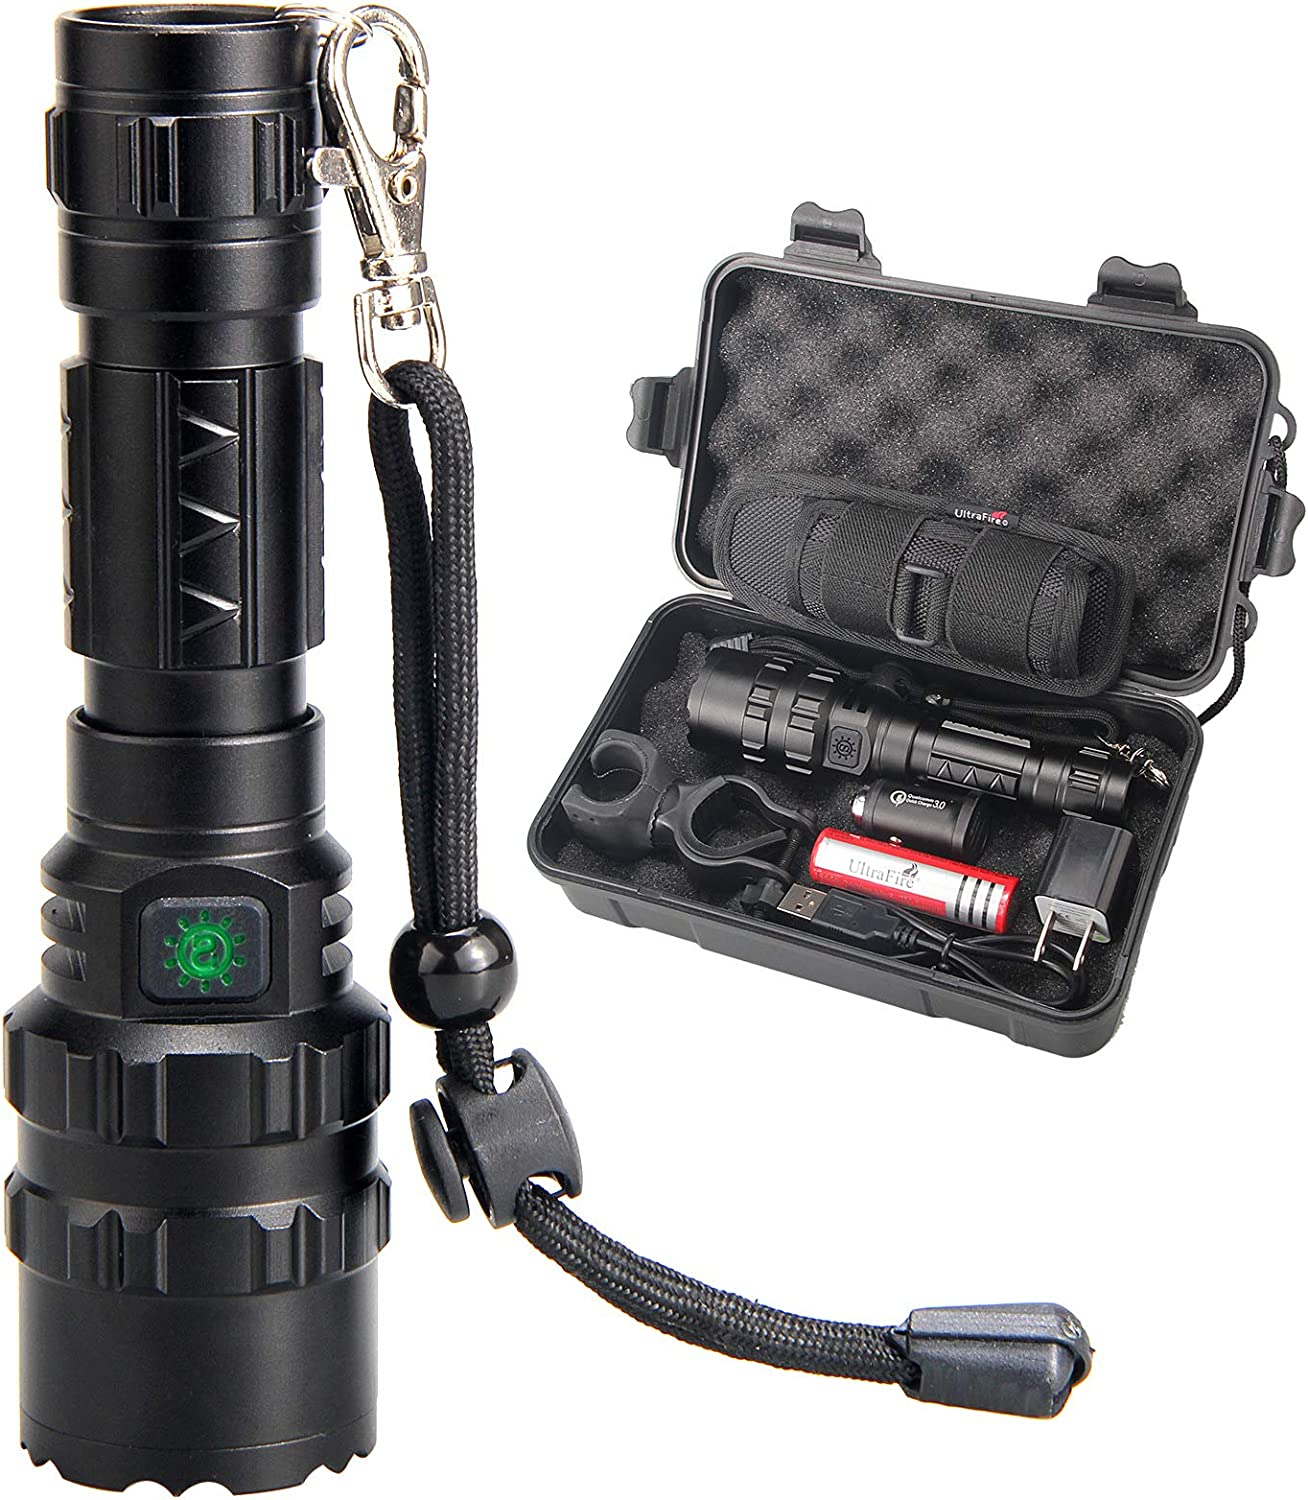 UltraFire 3 Pack 502B Tactical Flashlight 1000 Lumens 5 Modes Mini Flashlights Waterproof LED Torch Batteries Not Included